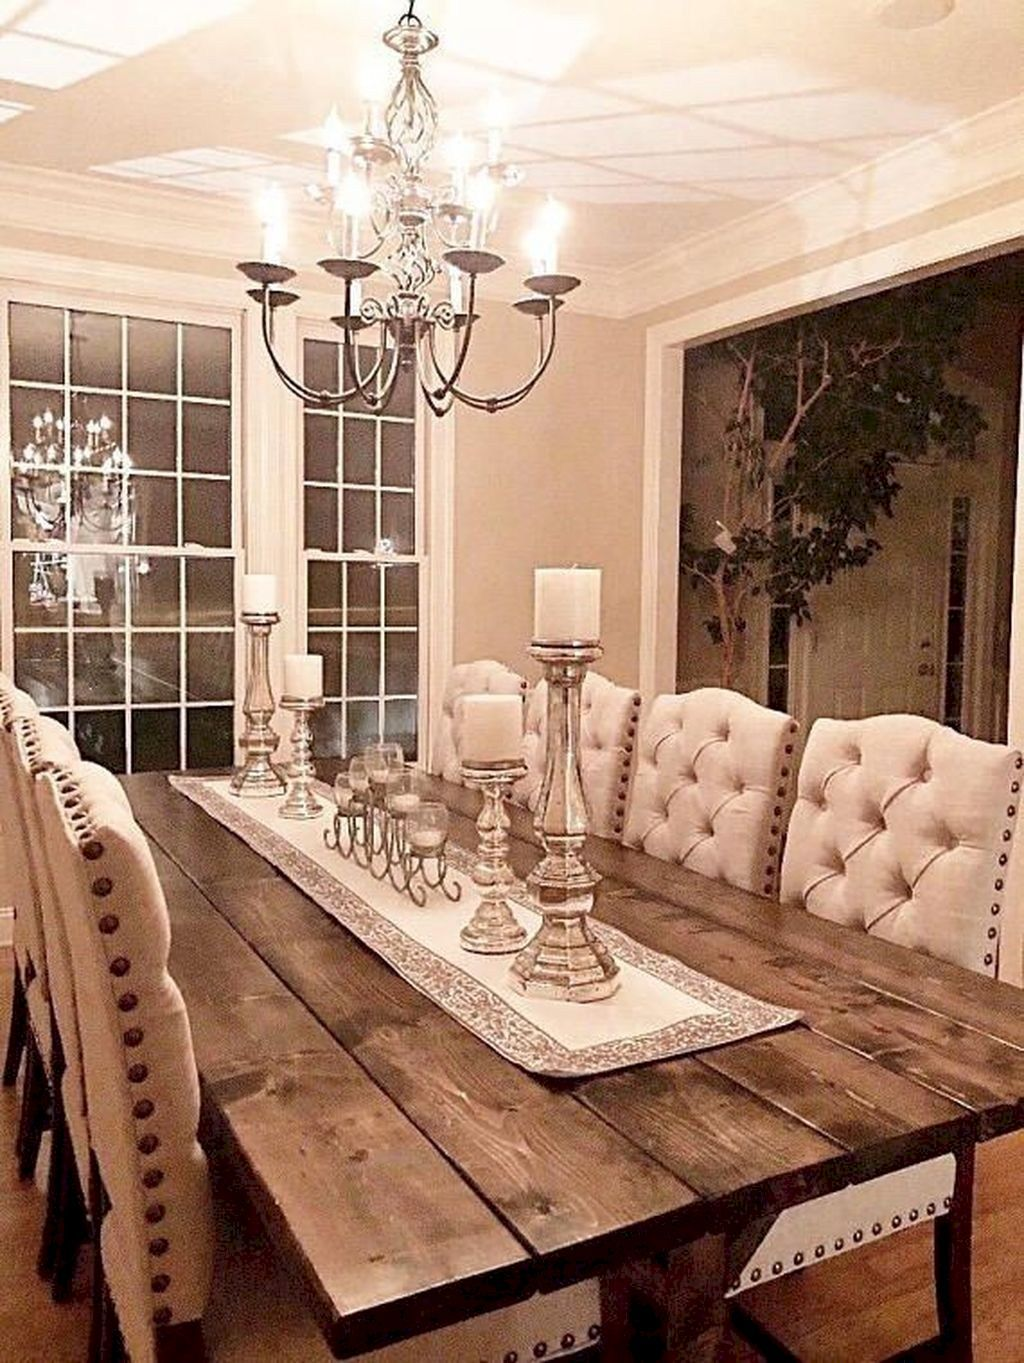 Rustic Dining Table Centerpiece